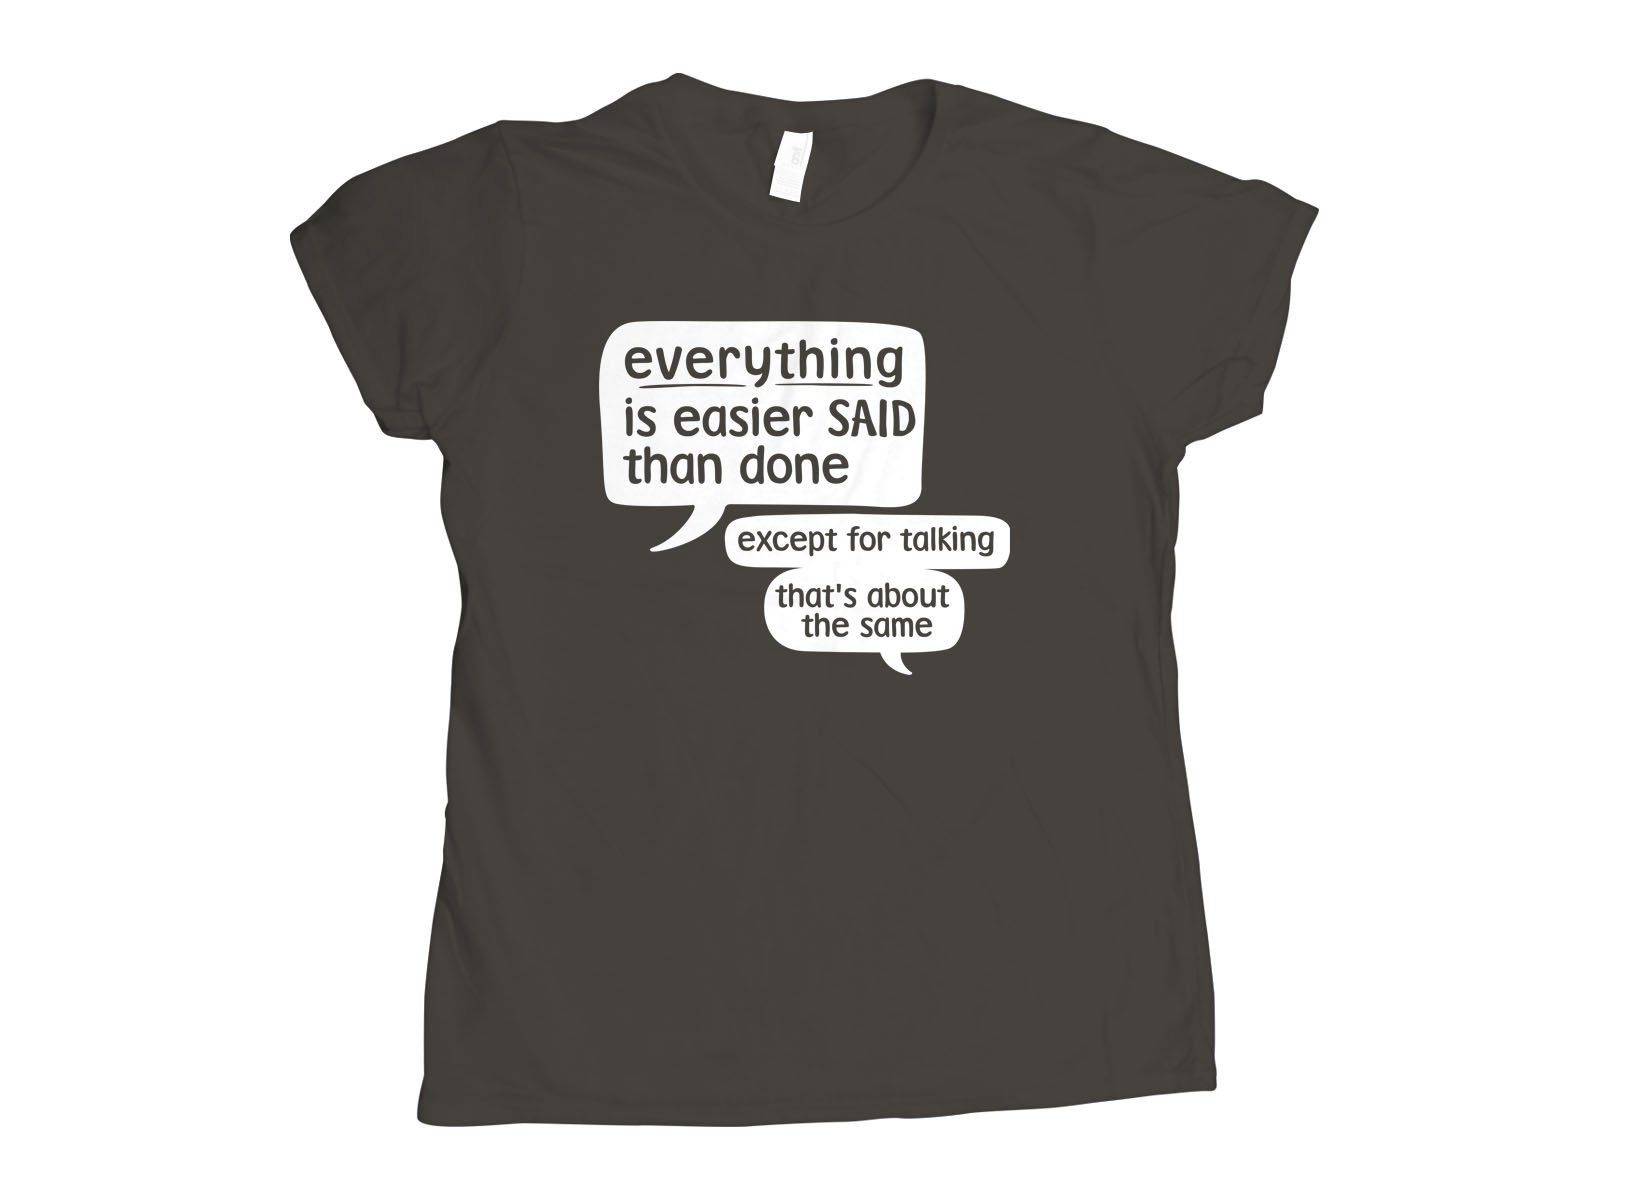 Everything Is Easier Said Than Done on Womens T-Shirt